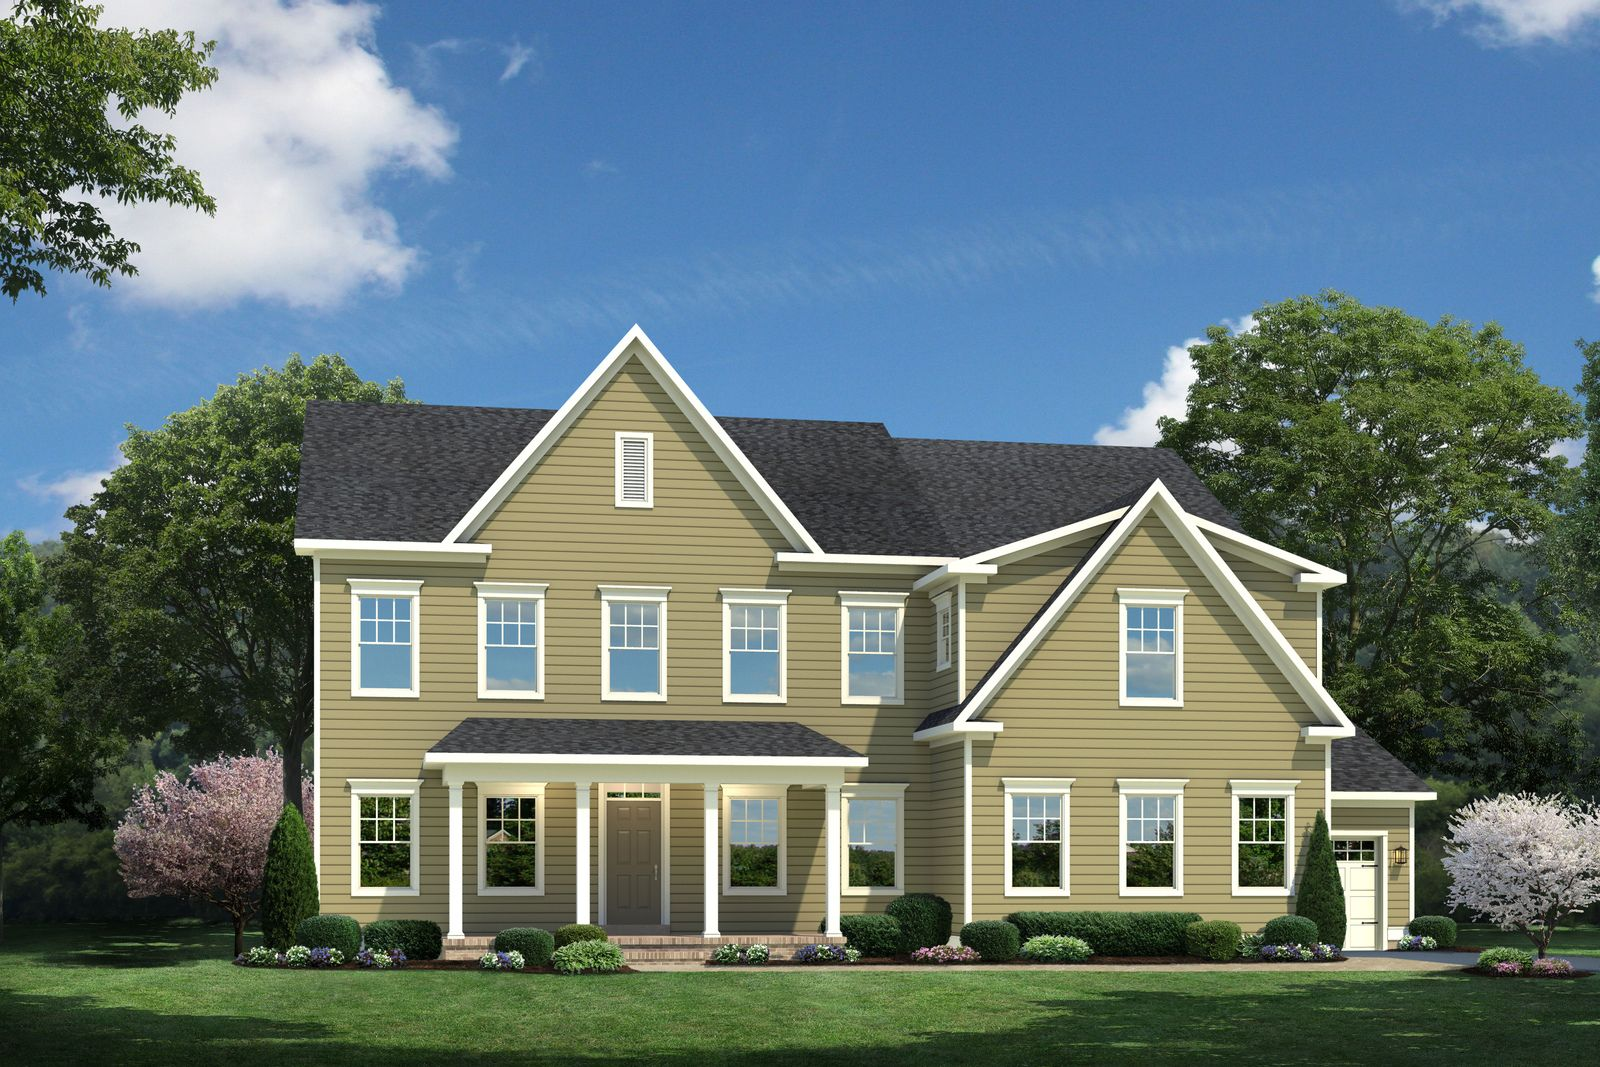 New Homes For Sale In Dumfries Va